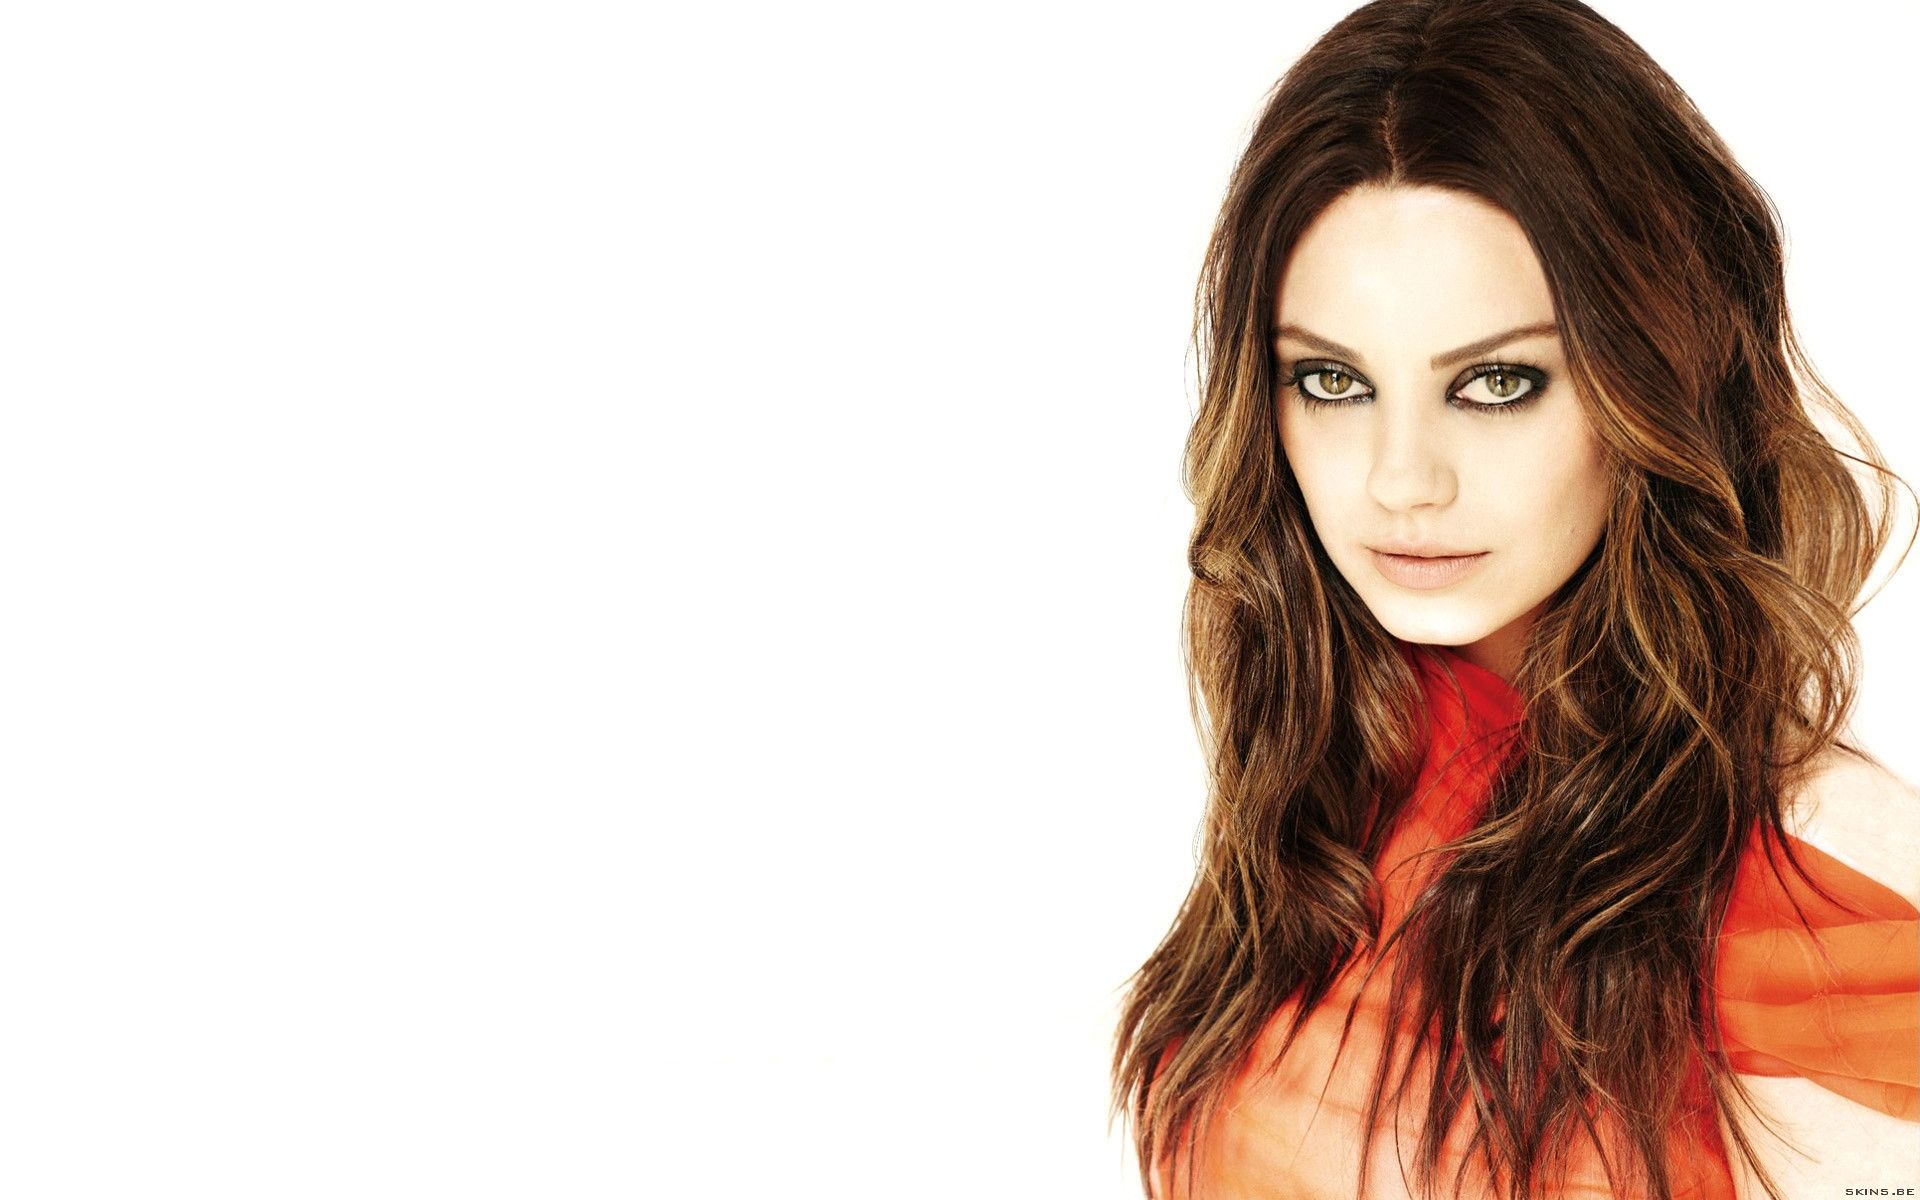 mila kunis wallpaper - sf wallpaper